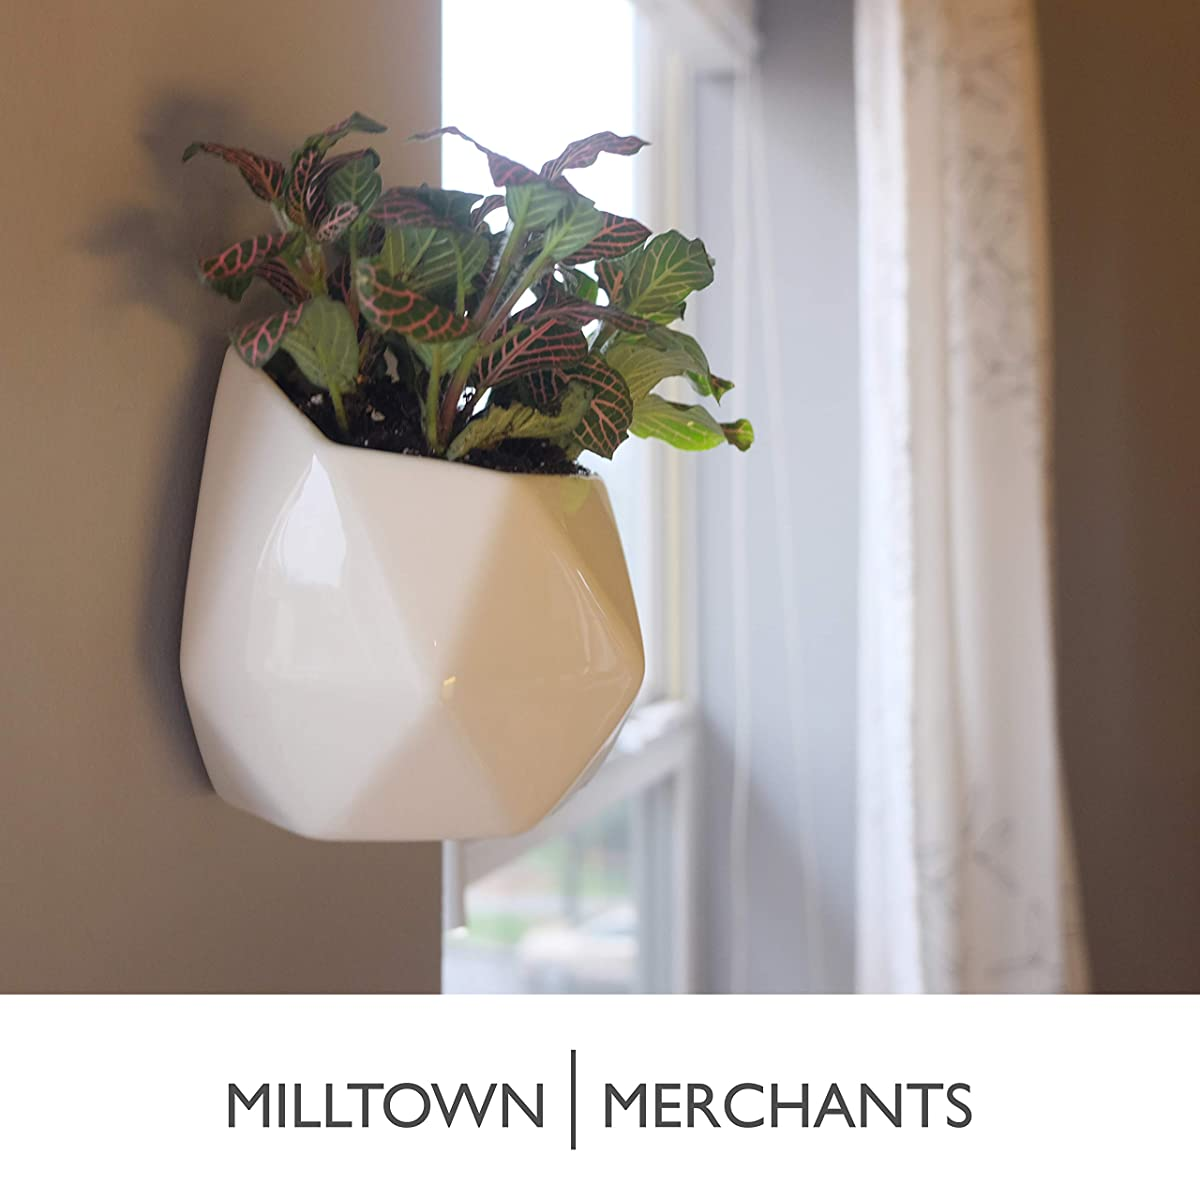 Milltown Merchants Succulent Wall Planters - Wall Vases - Black Ceramic Wall Mounted Planters - Succulent Plant Pots - Hanging Vases for Living Wall (4 Pack/Geometric/White)